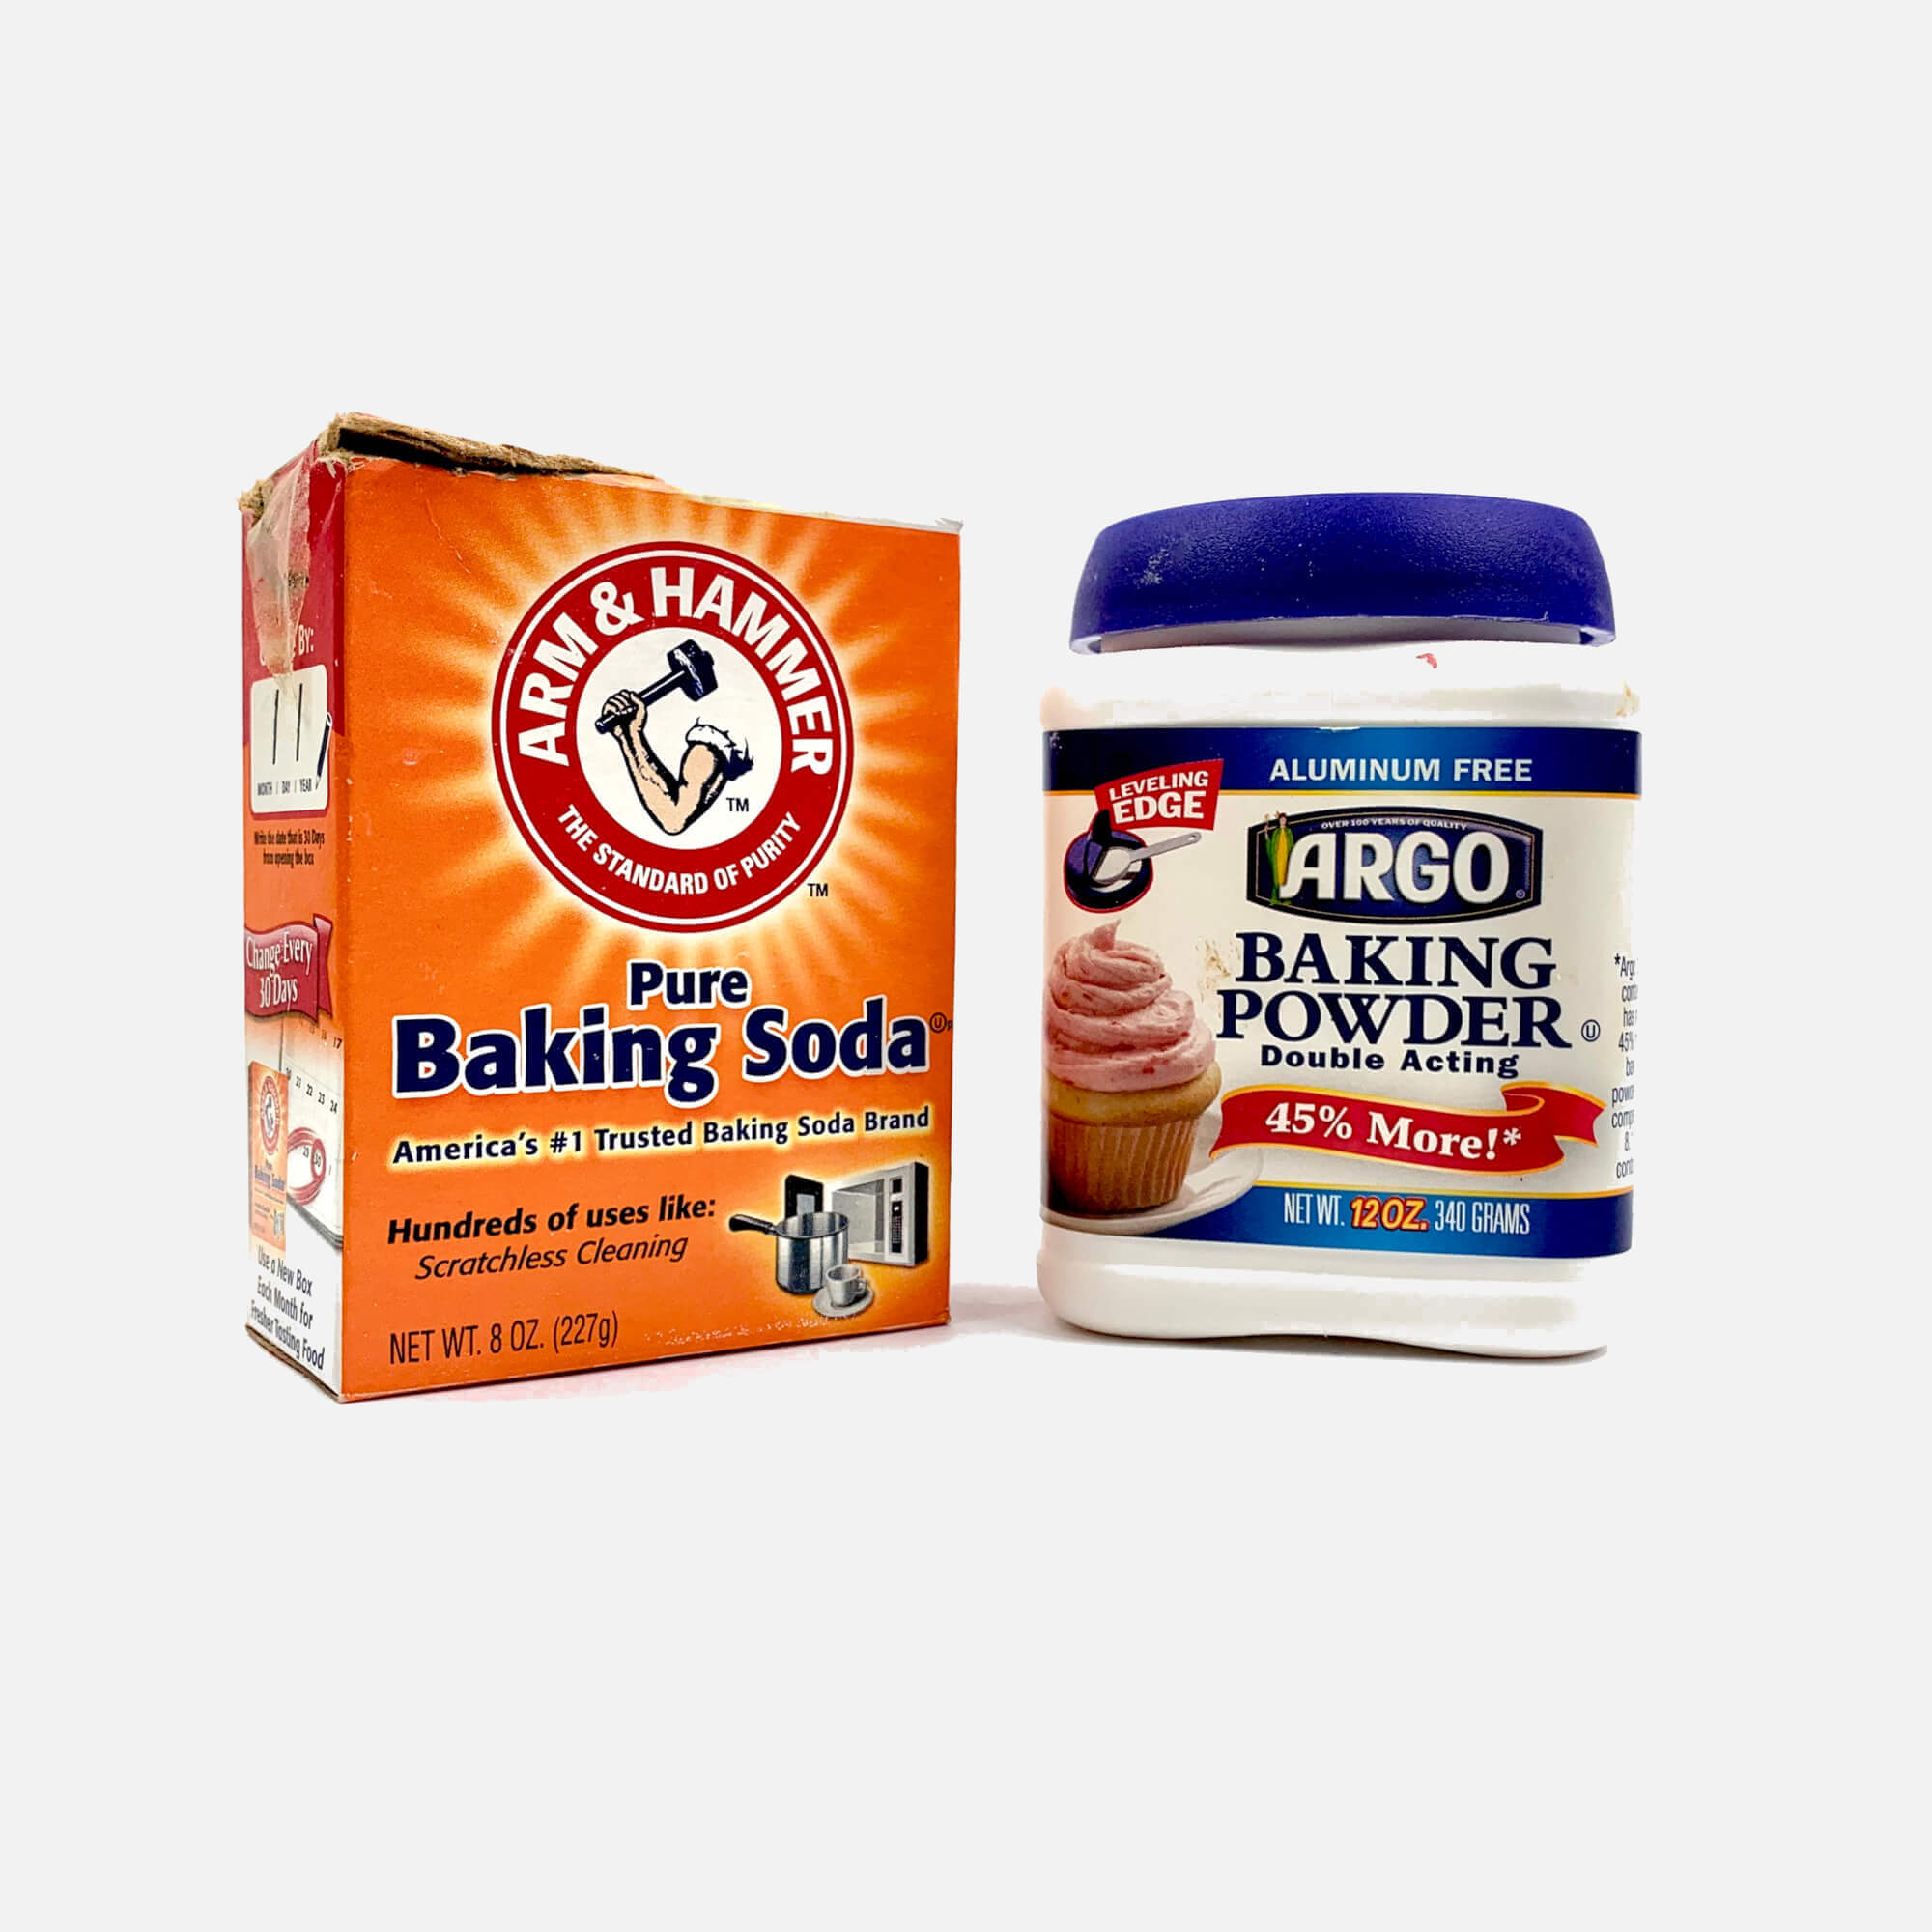 Baking Powder & Baking Soda Experiment